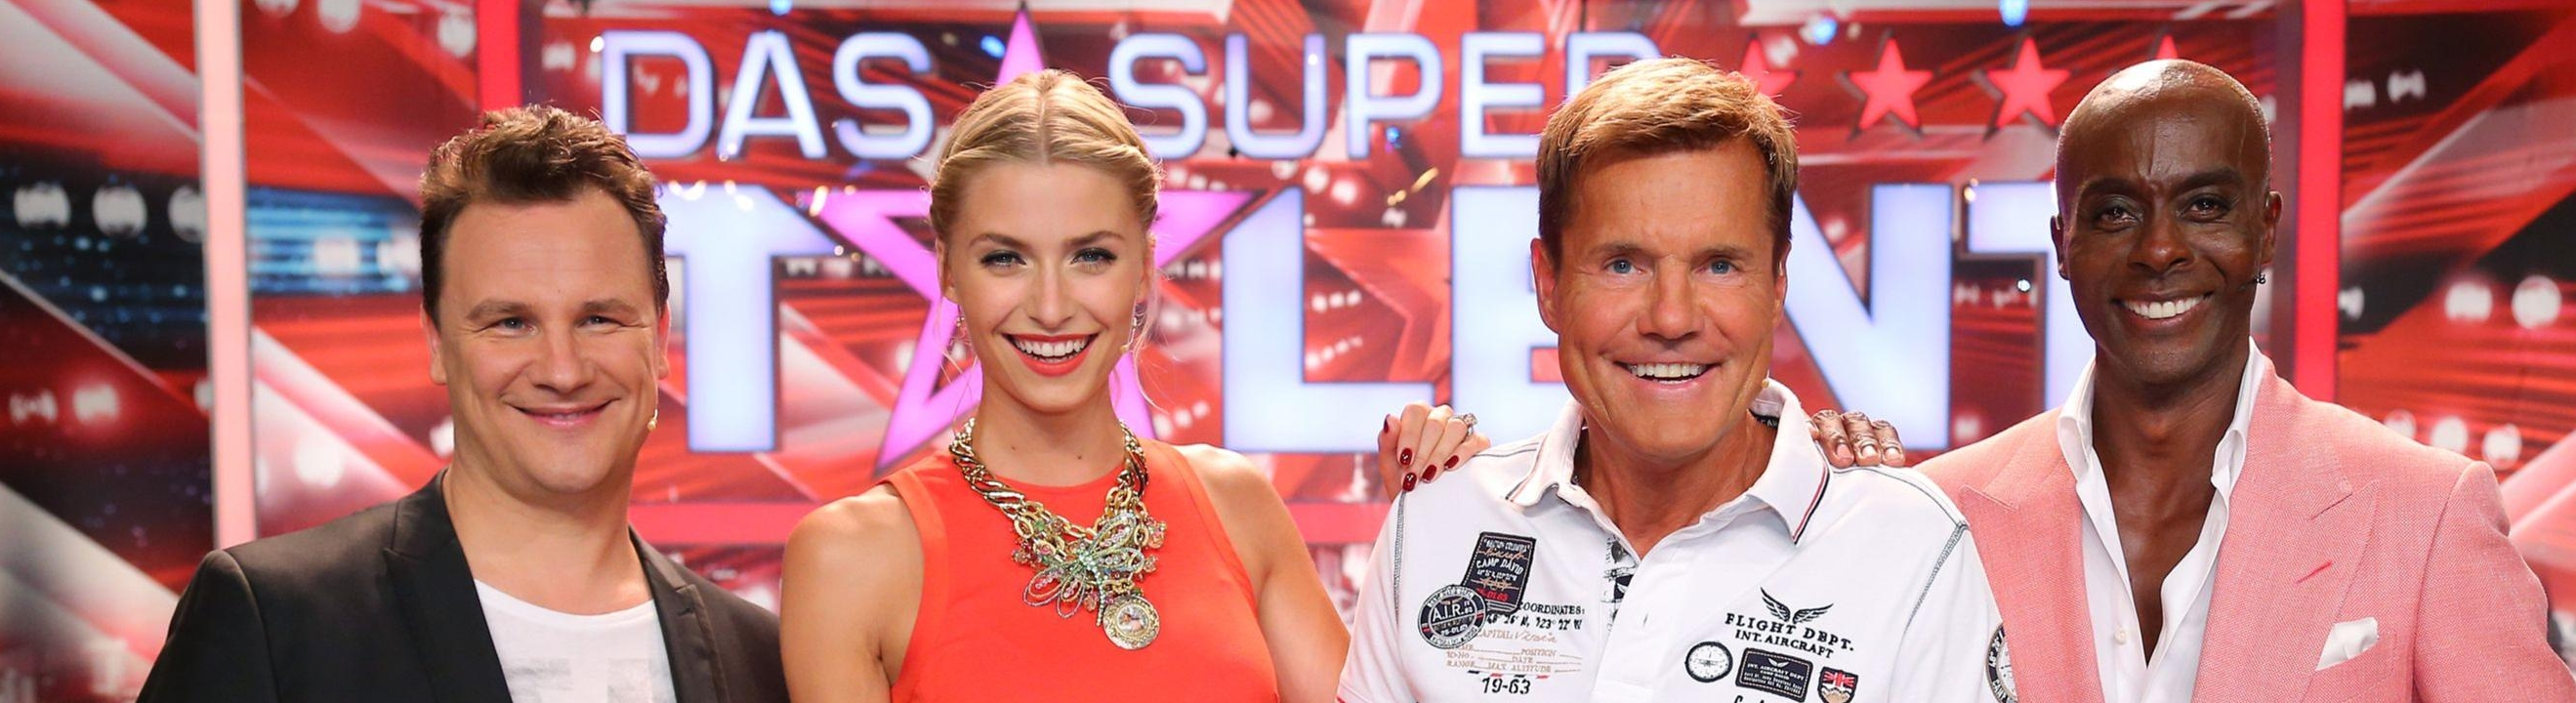 """Das Supertalent 2013"": Quoten"